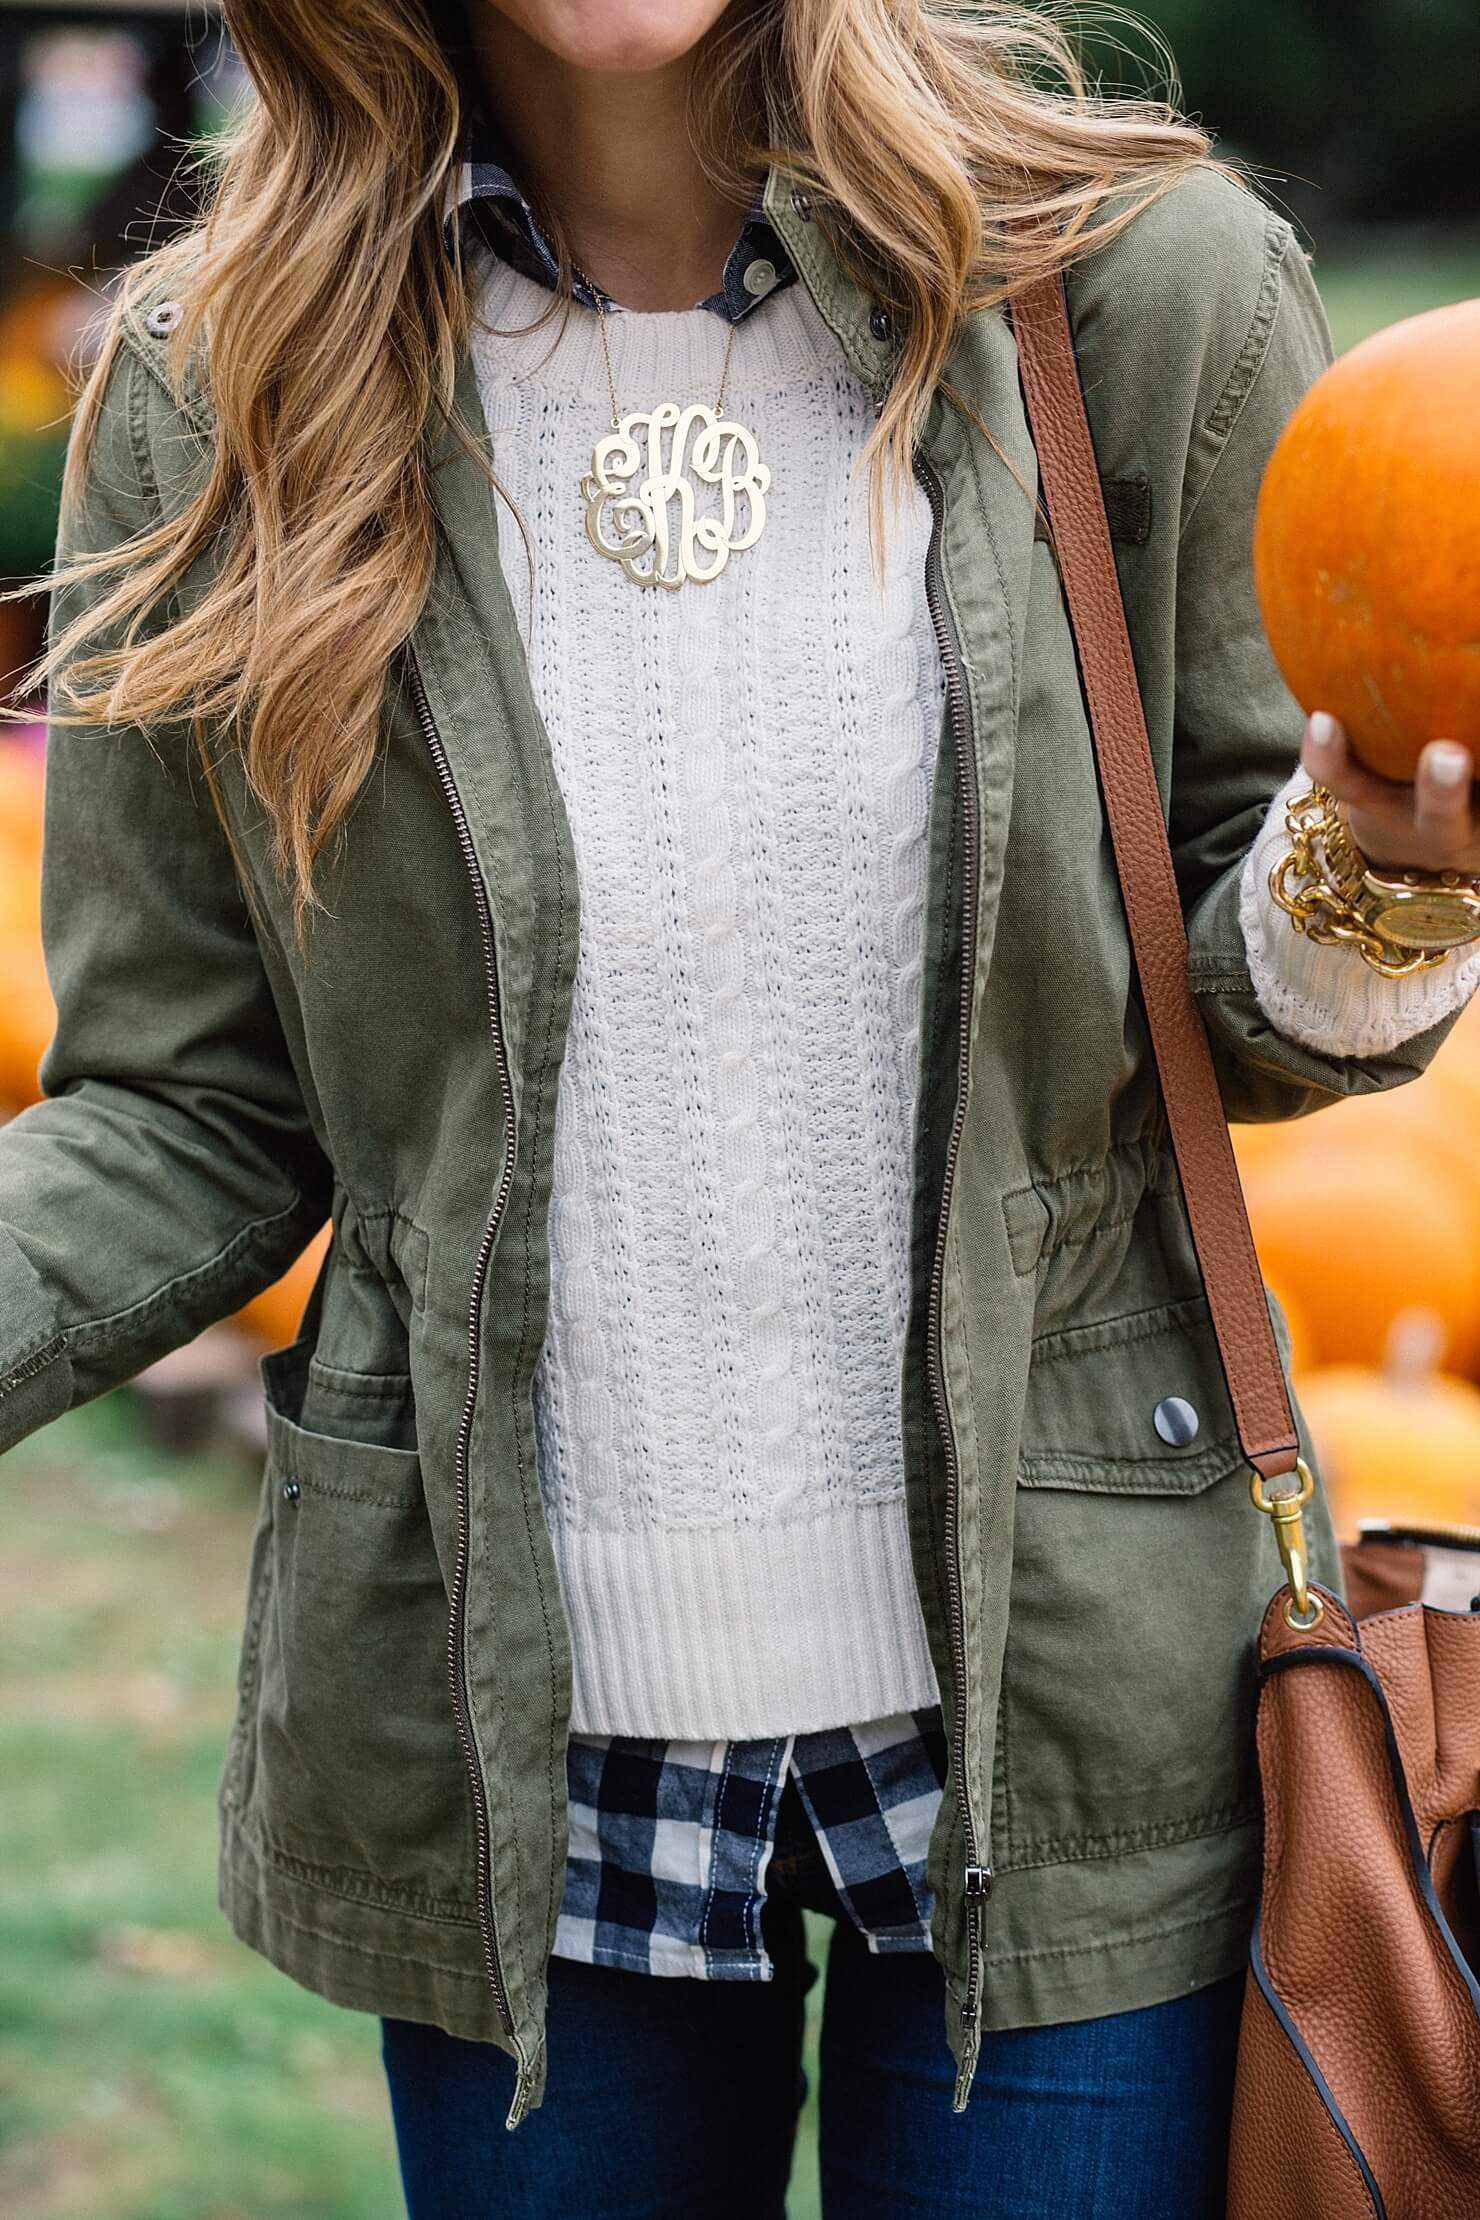 fall outfit details, layered cable knit sweater and gingham button up, oversized monogram necklace, at pumpkin patch, cute fall outfit details